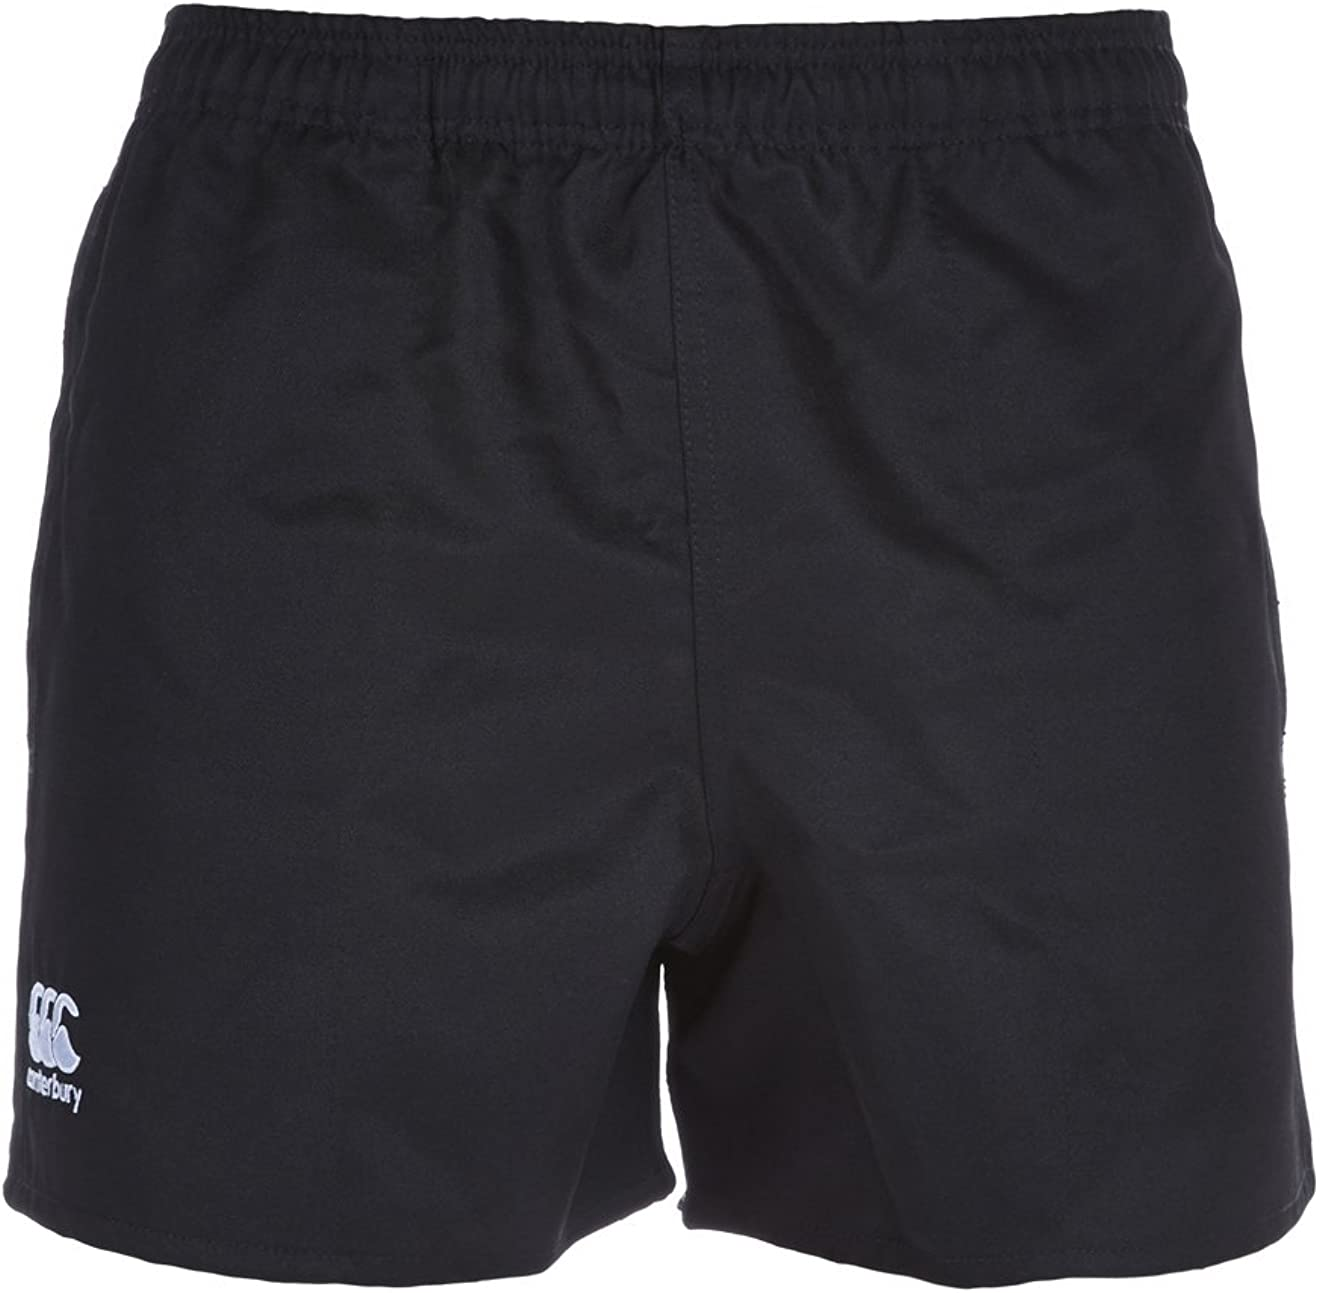 Canterbury Adult 247 New Orleans Milwaukee Mall Mall Professional Shorts